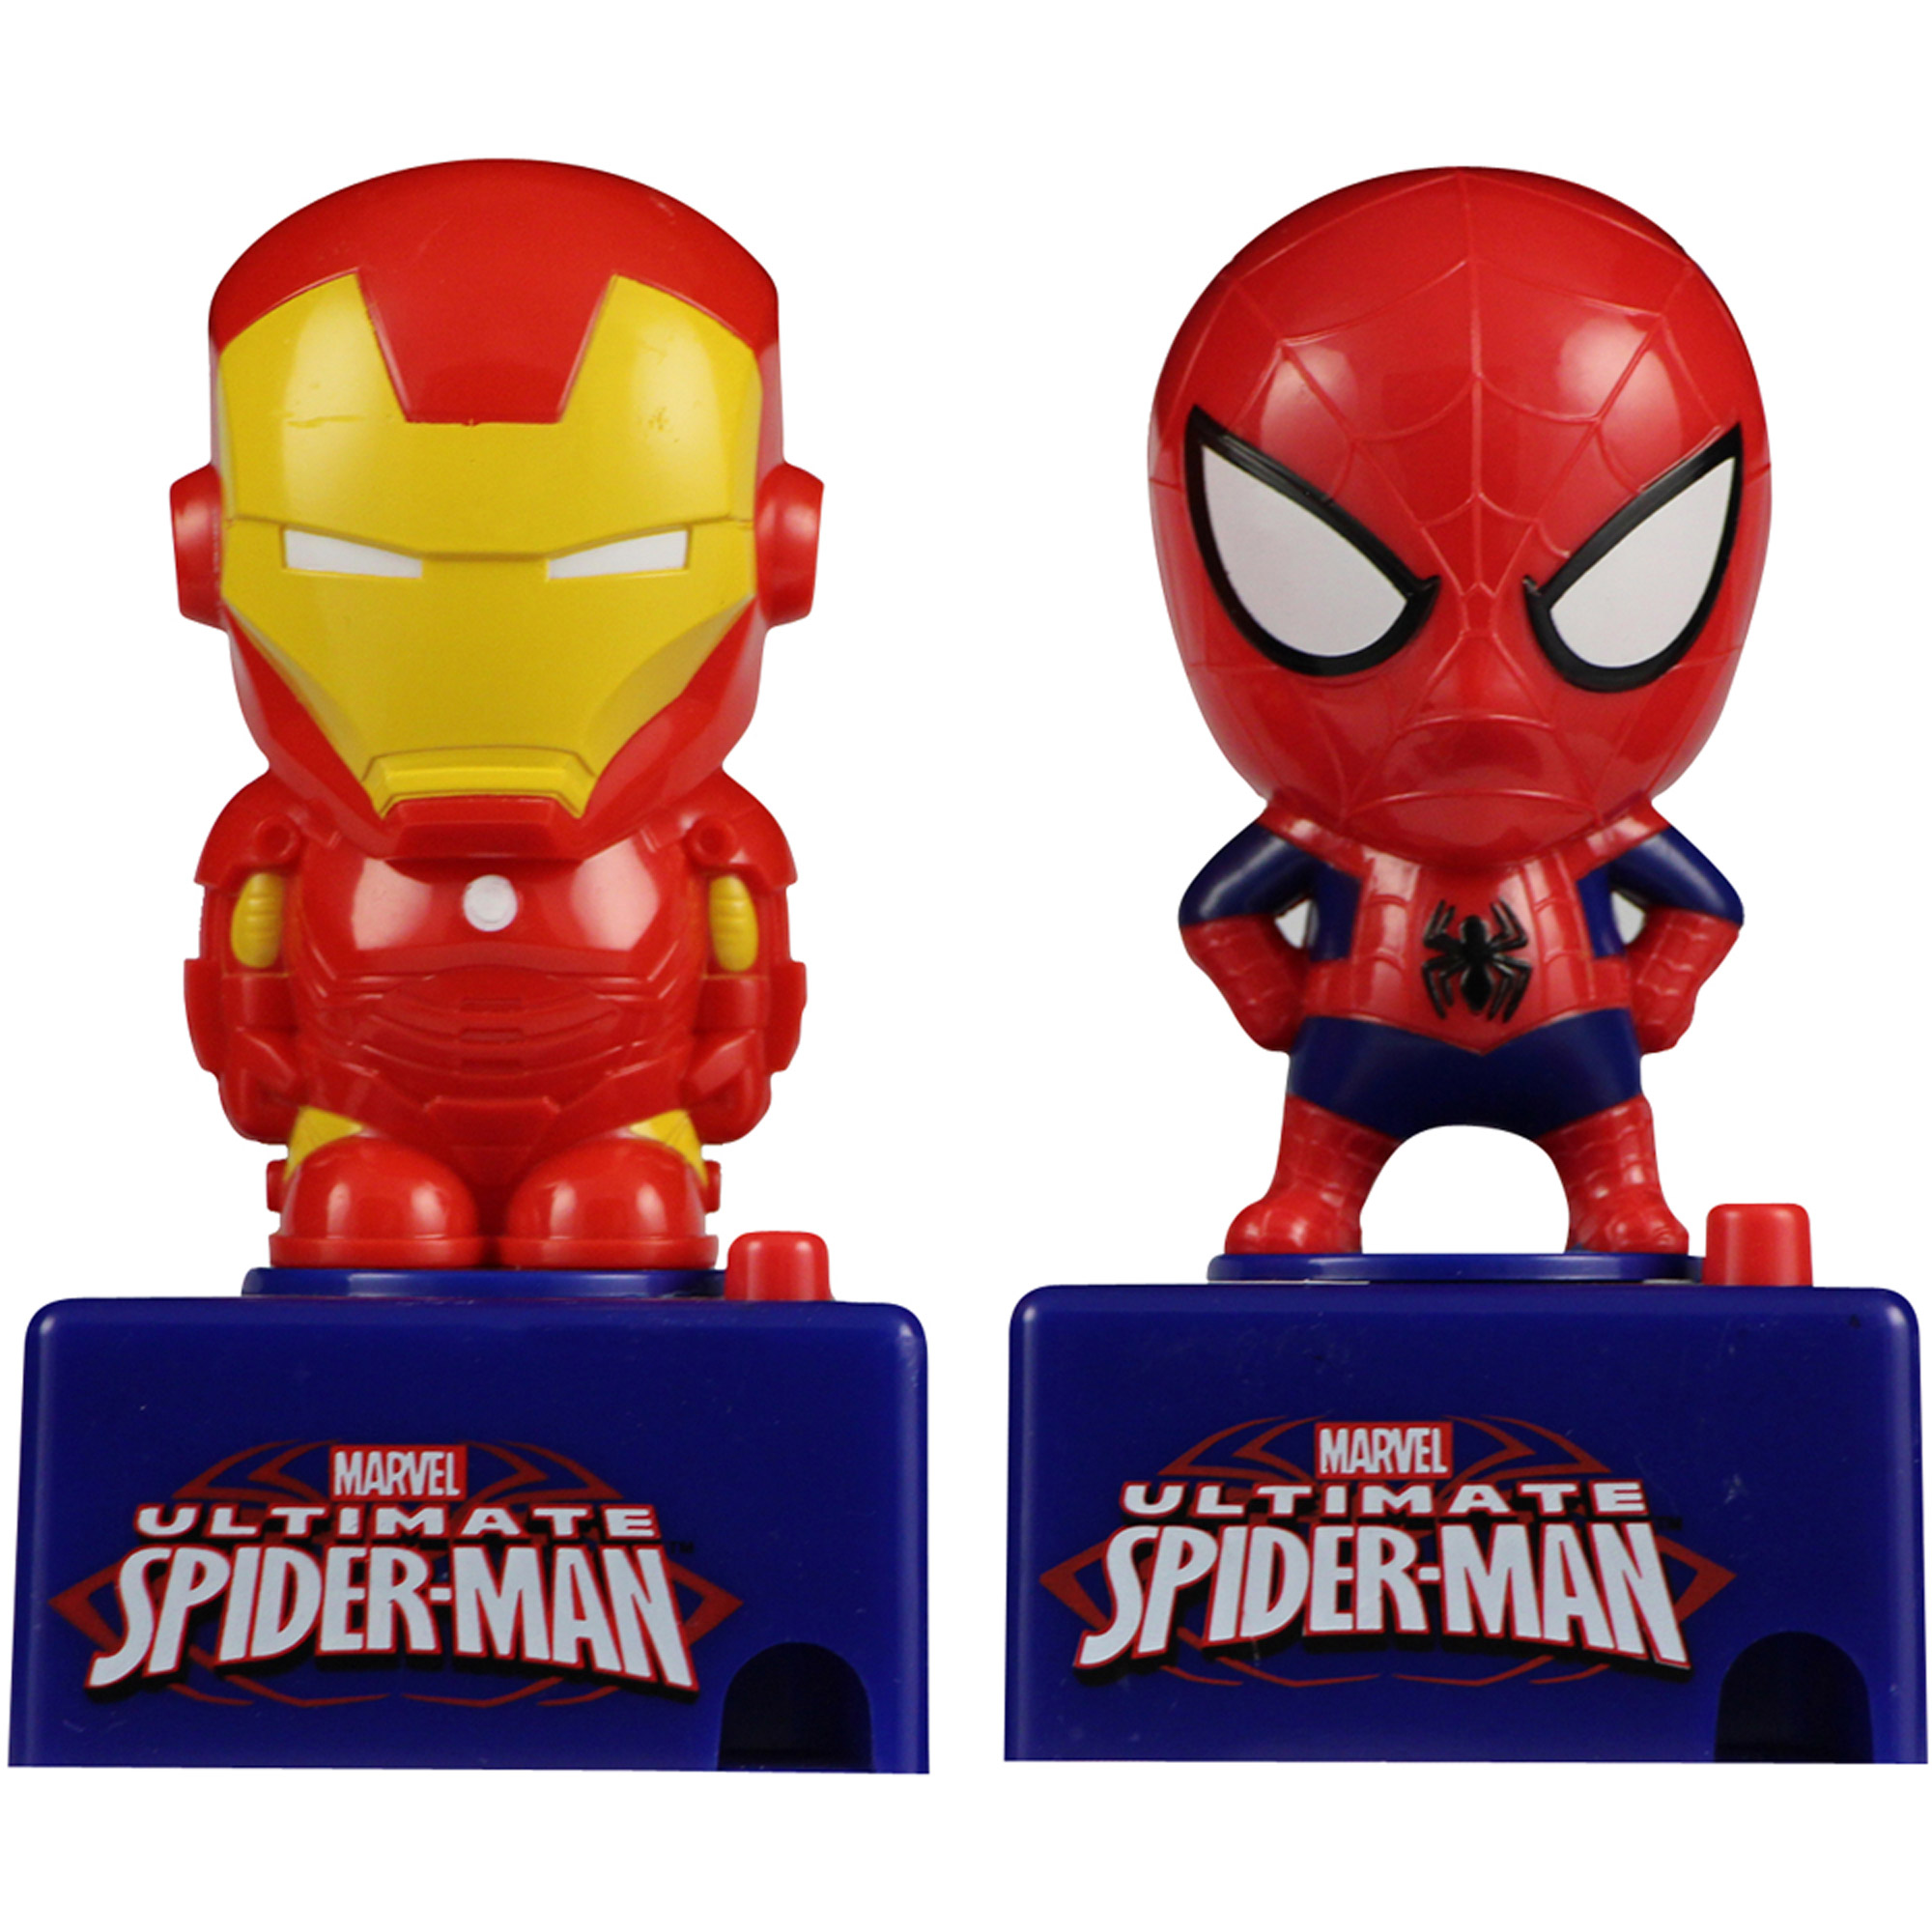 Marvel Candy Pieces Dispenser with Sound, 0.3 oz, Pack of 6